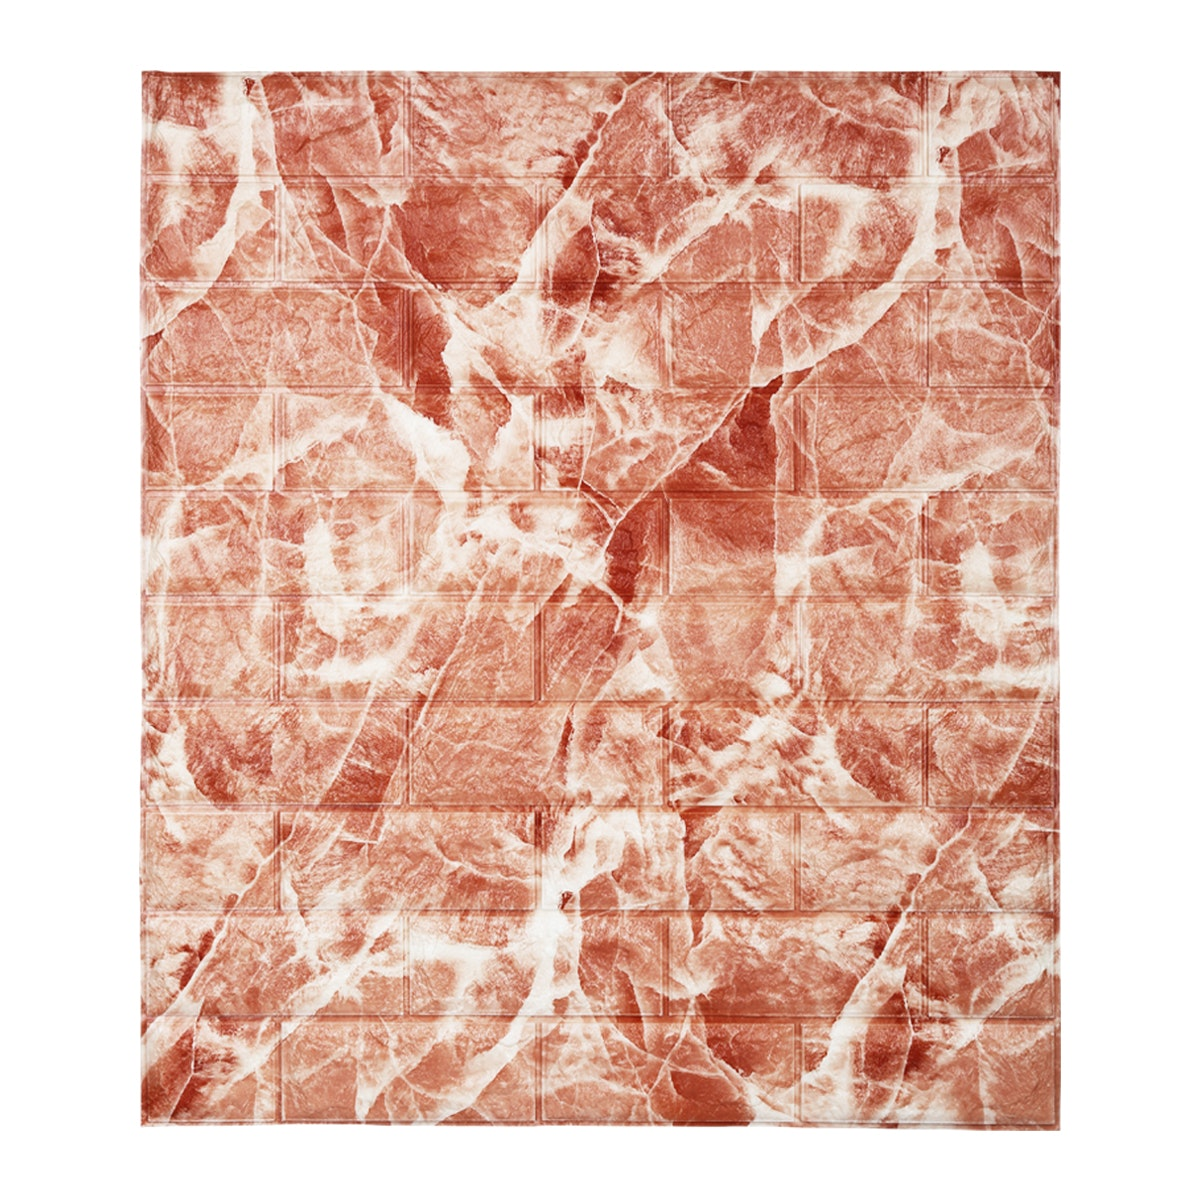 Luxurious Wallpaper Foam Brick - Red Marble